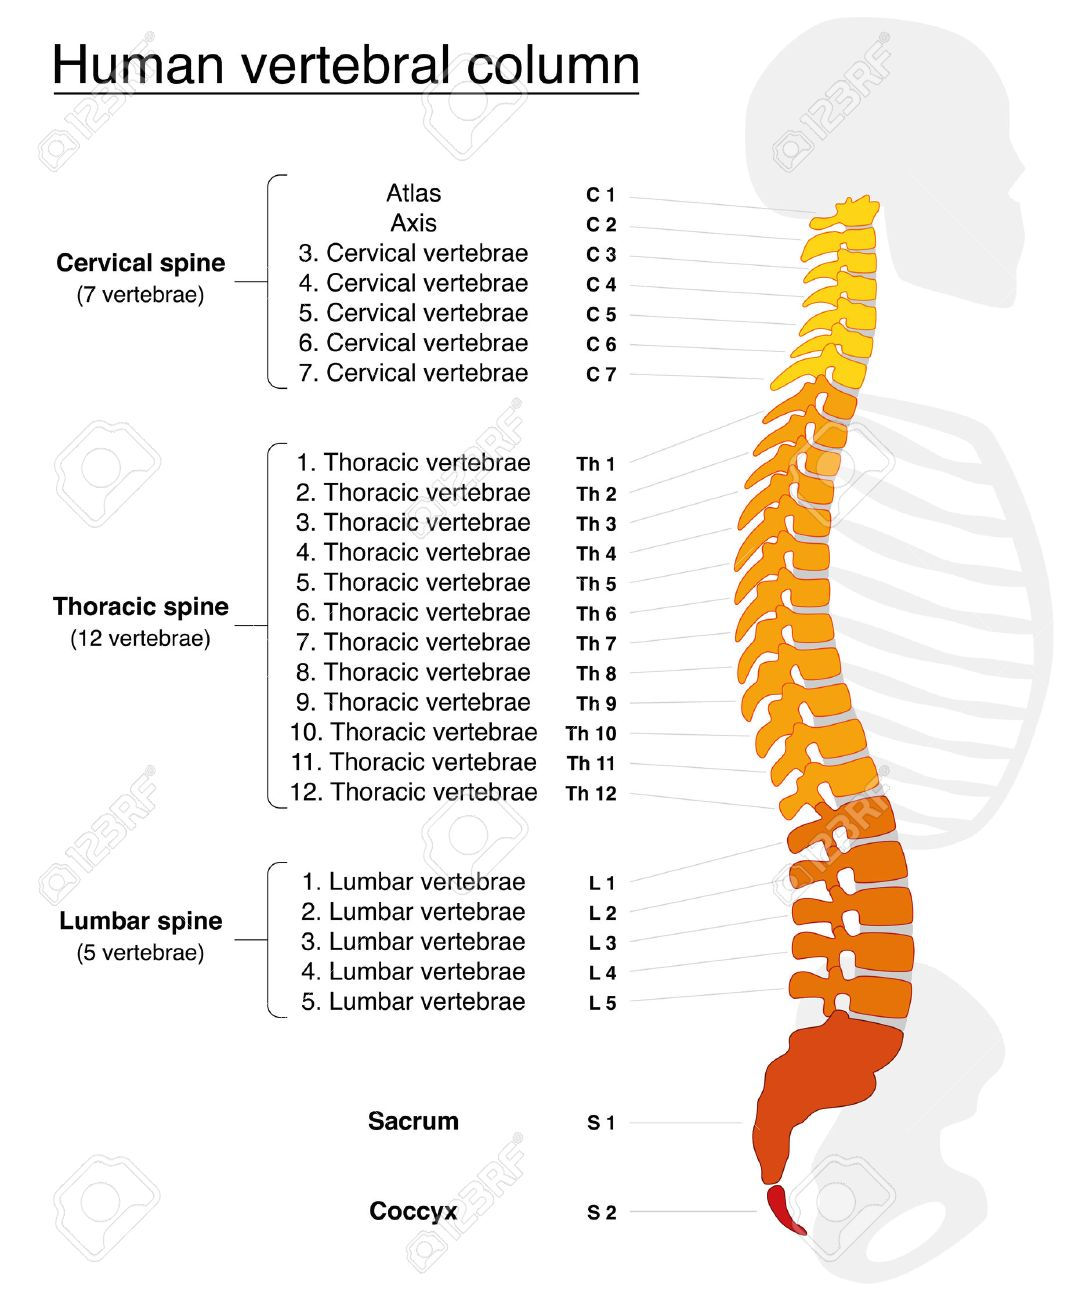 Vertebral Column With Names And Numbers Of The Vertebras - Lateral ...